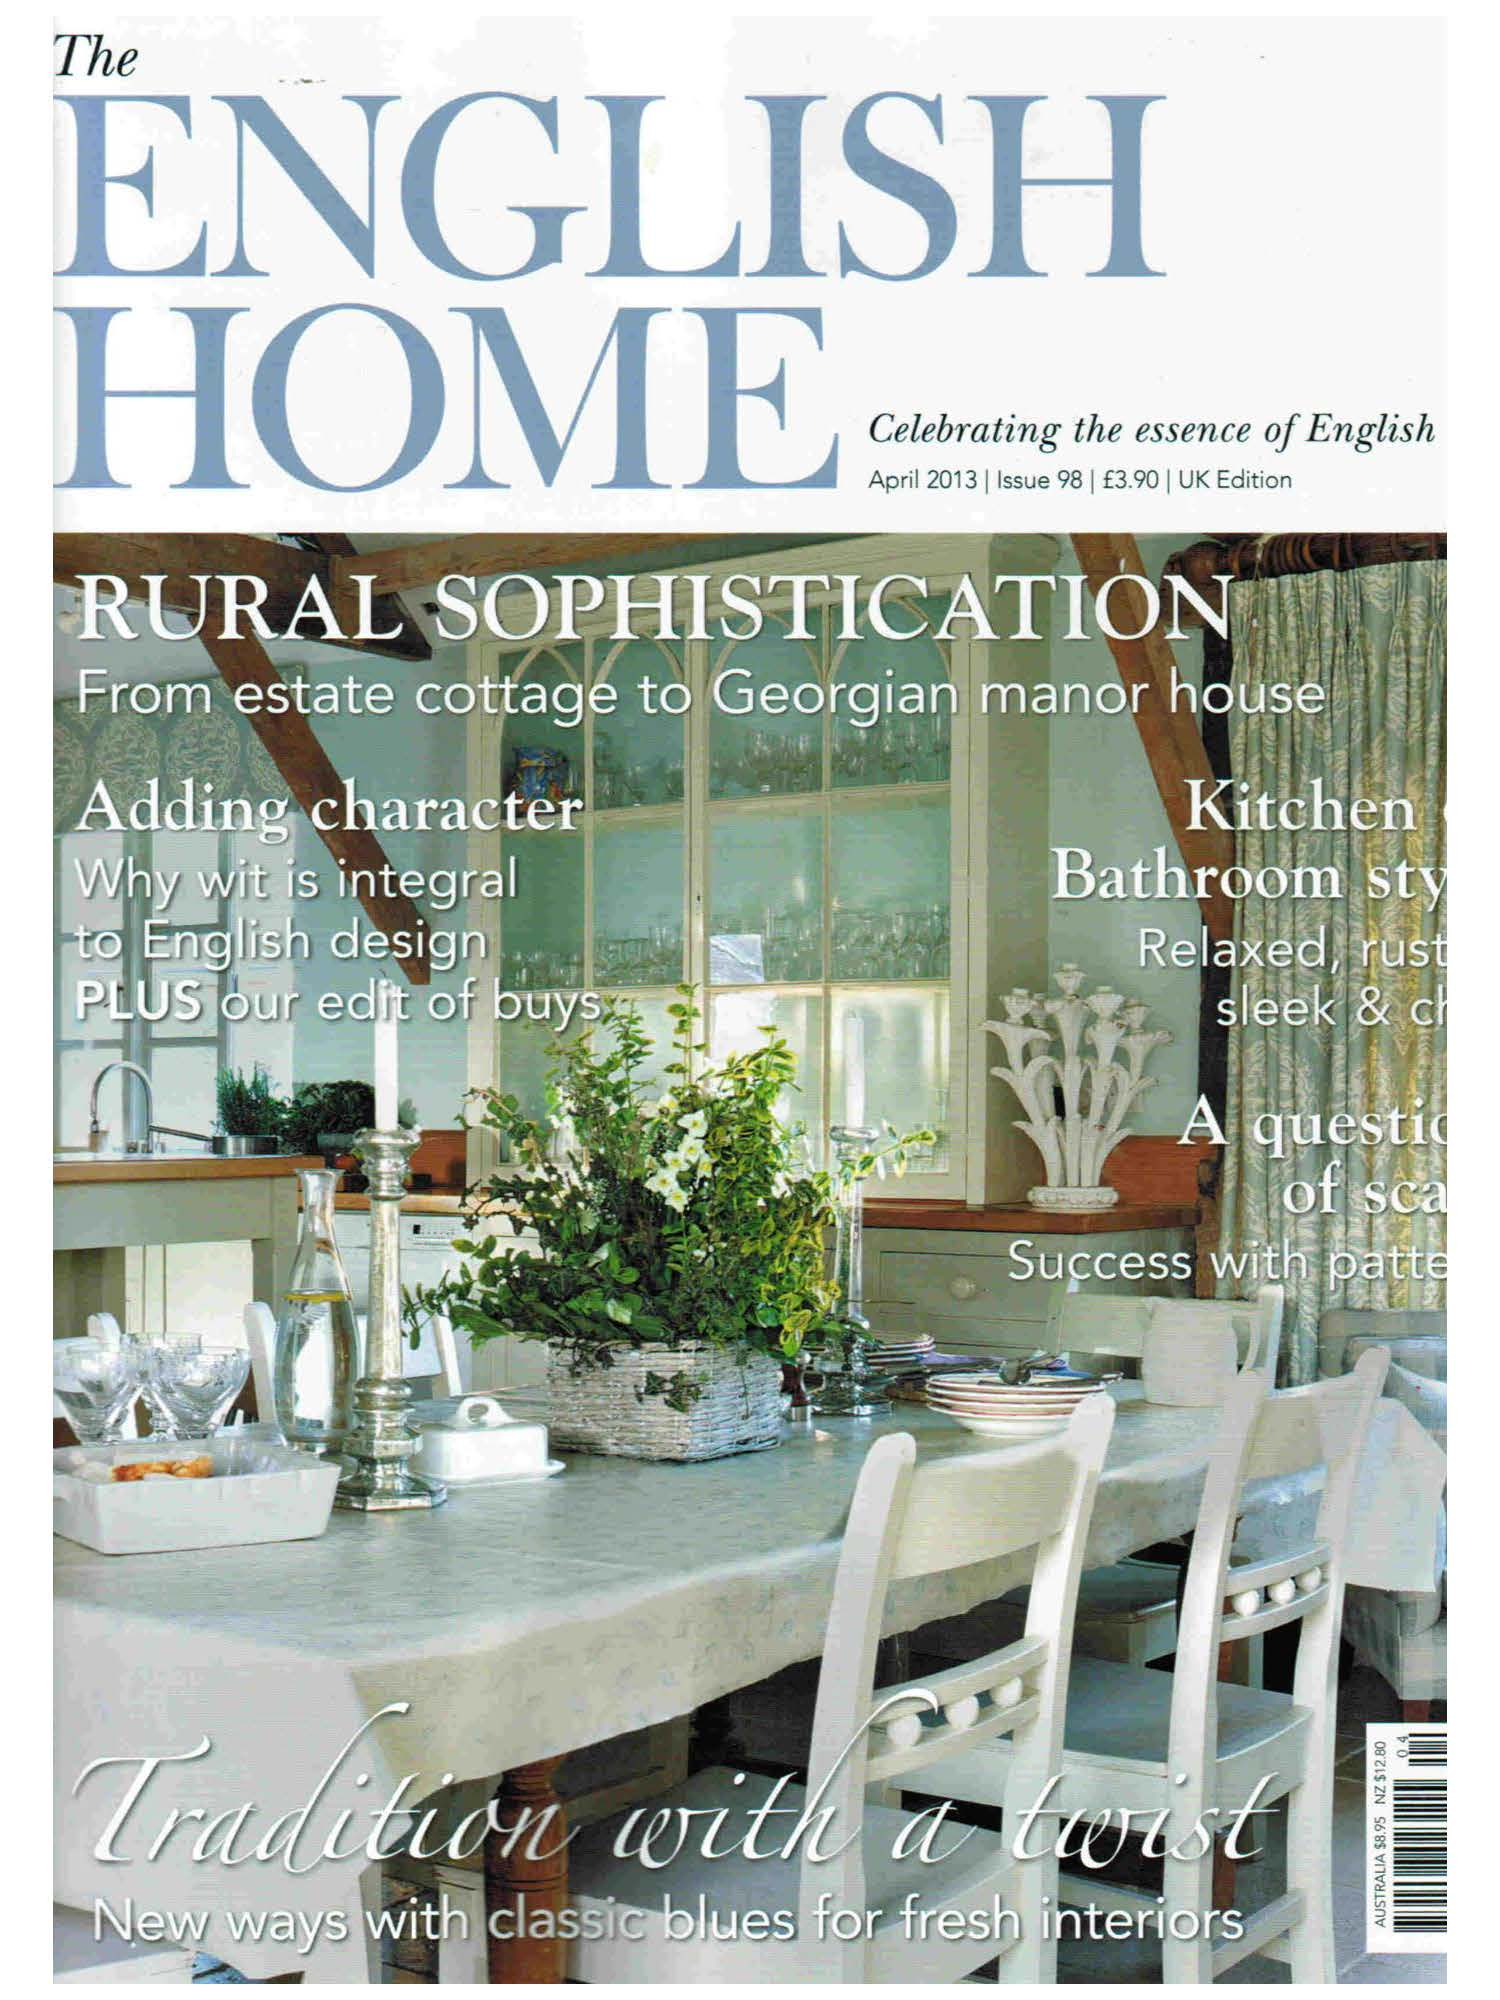 dog, dogs, style, magazine, press, editorial, english home, sophisticated